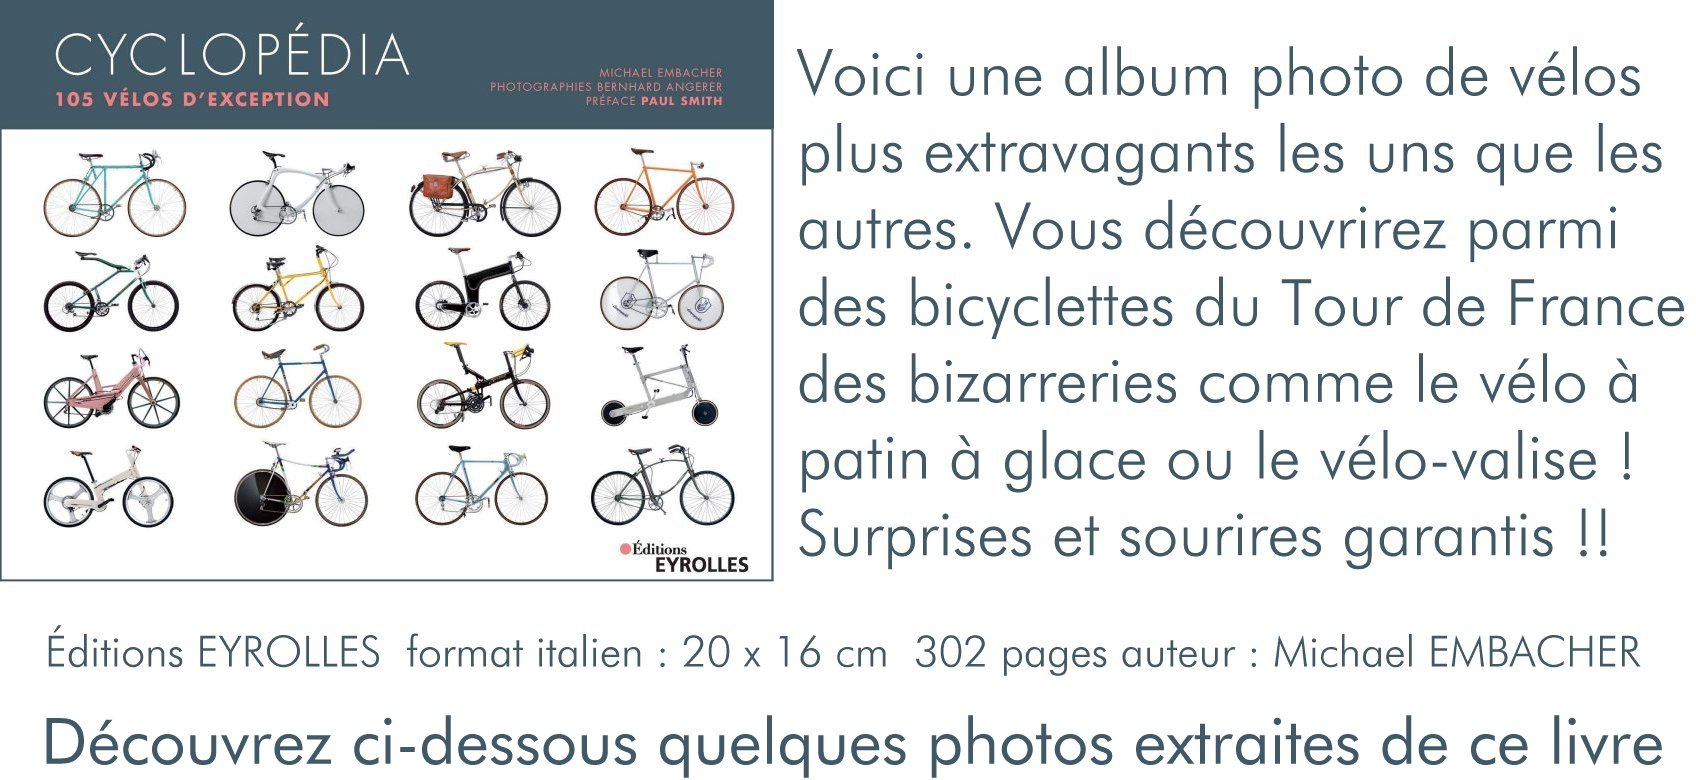 cyclopedia article